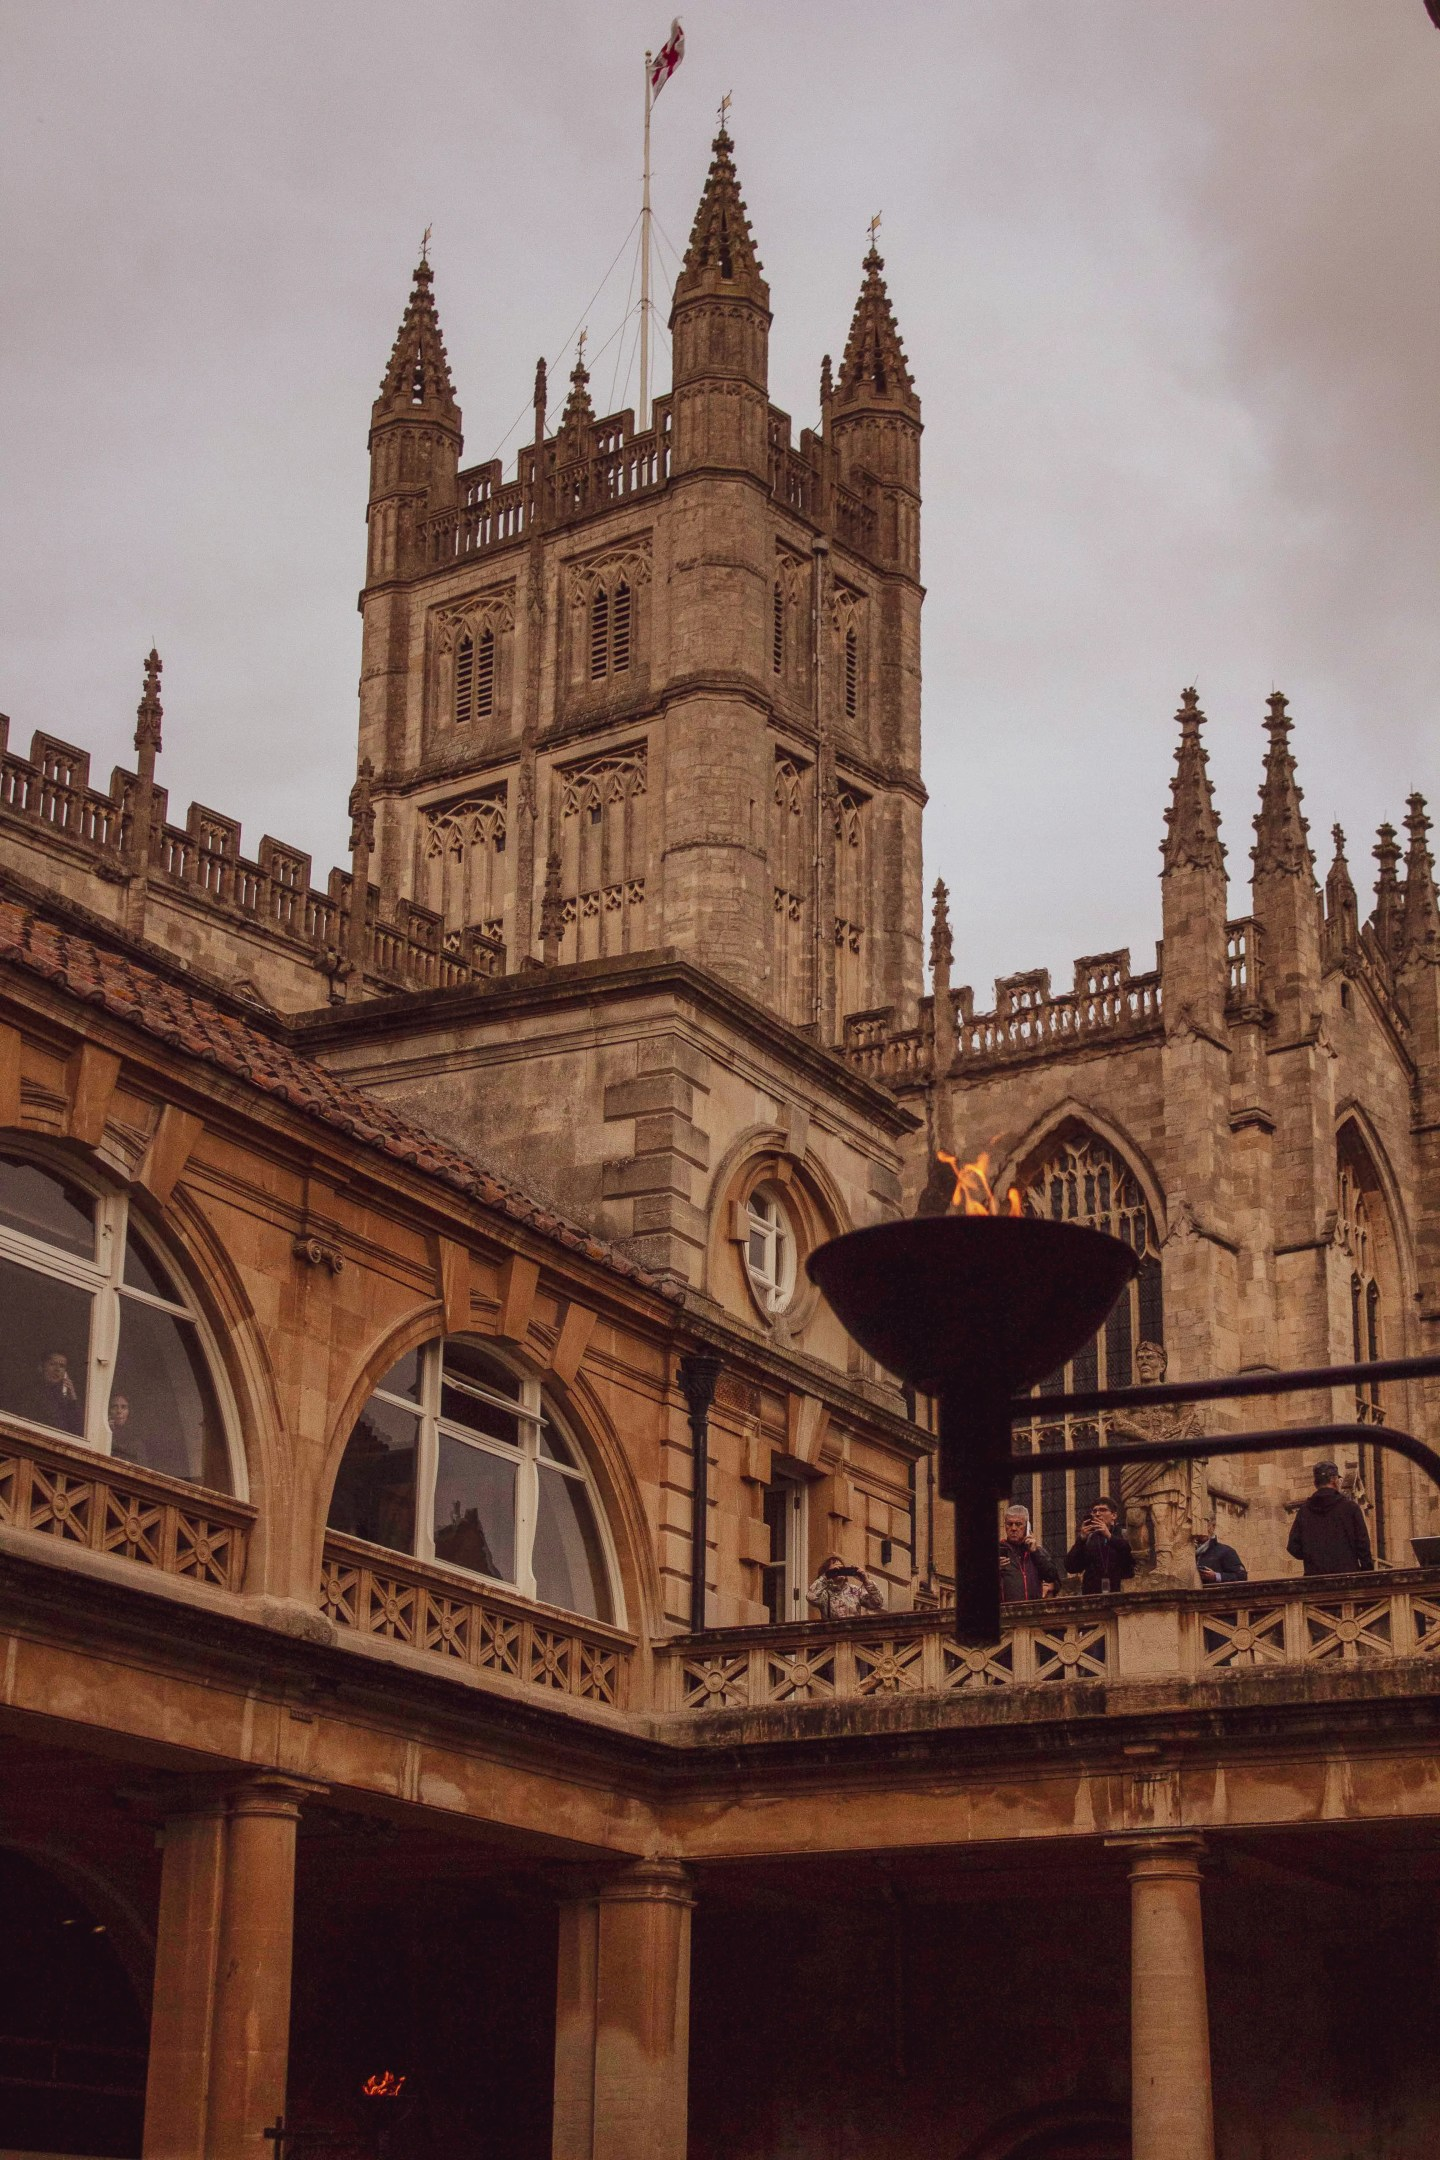 Bath Abbey tower seen from inside the Roman Baths with a beacon in front